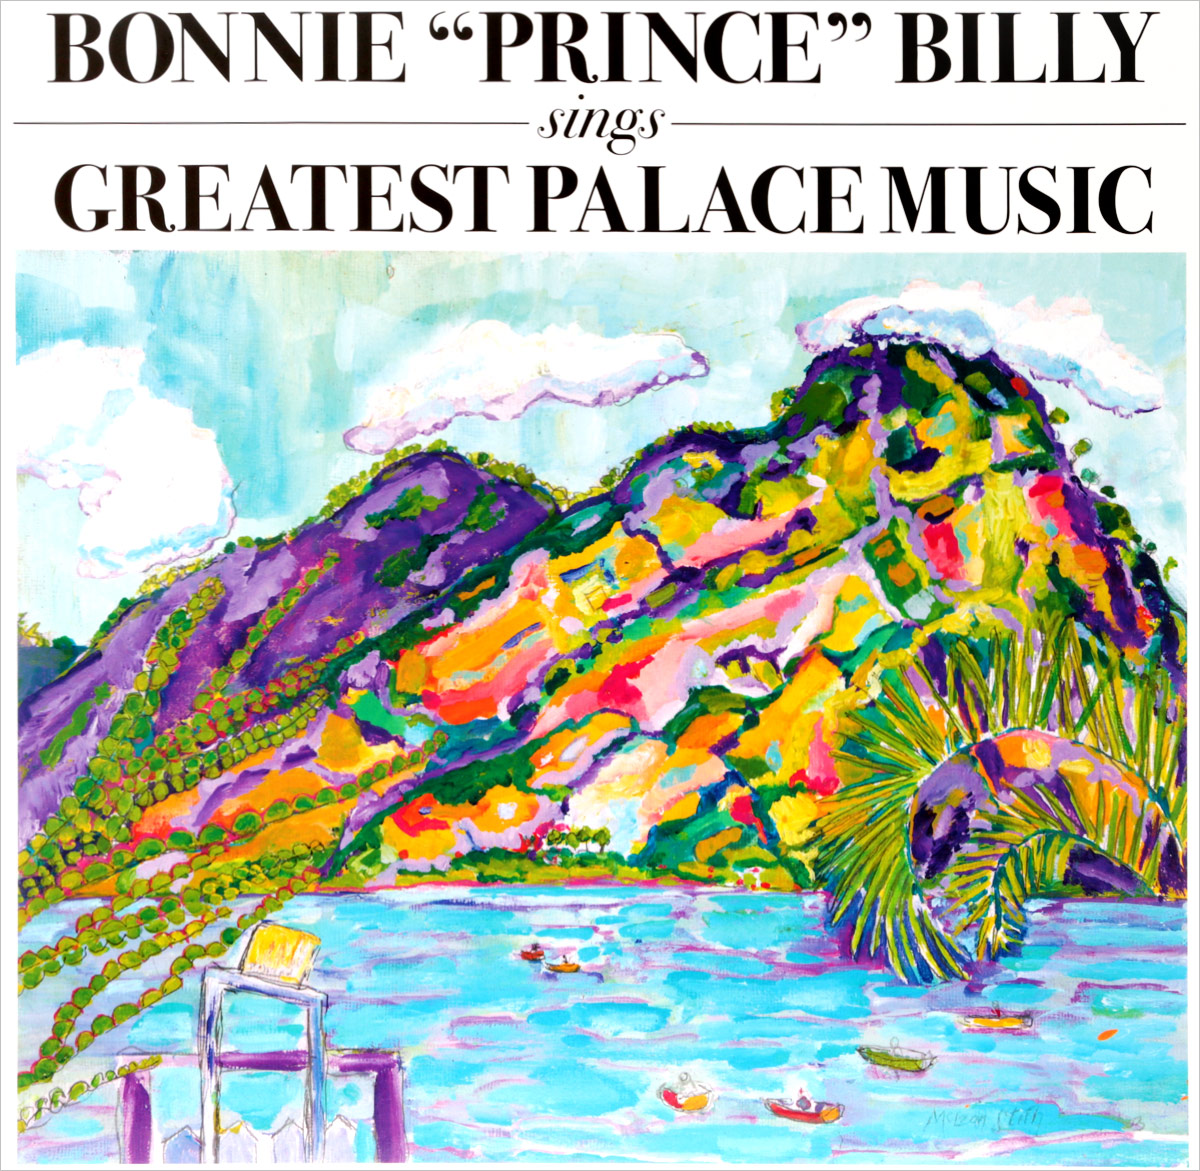 Уилл Олдхэм Bonnie Prince Billy. Greatest Palace Music (2 LP) уилл олдхэм bonnie prince billy now here s my plan